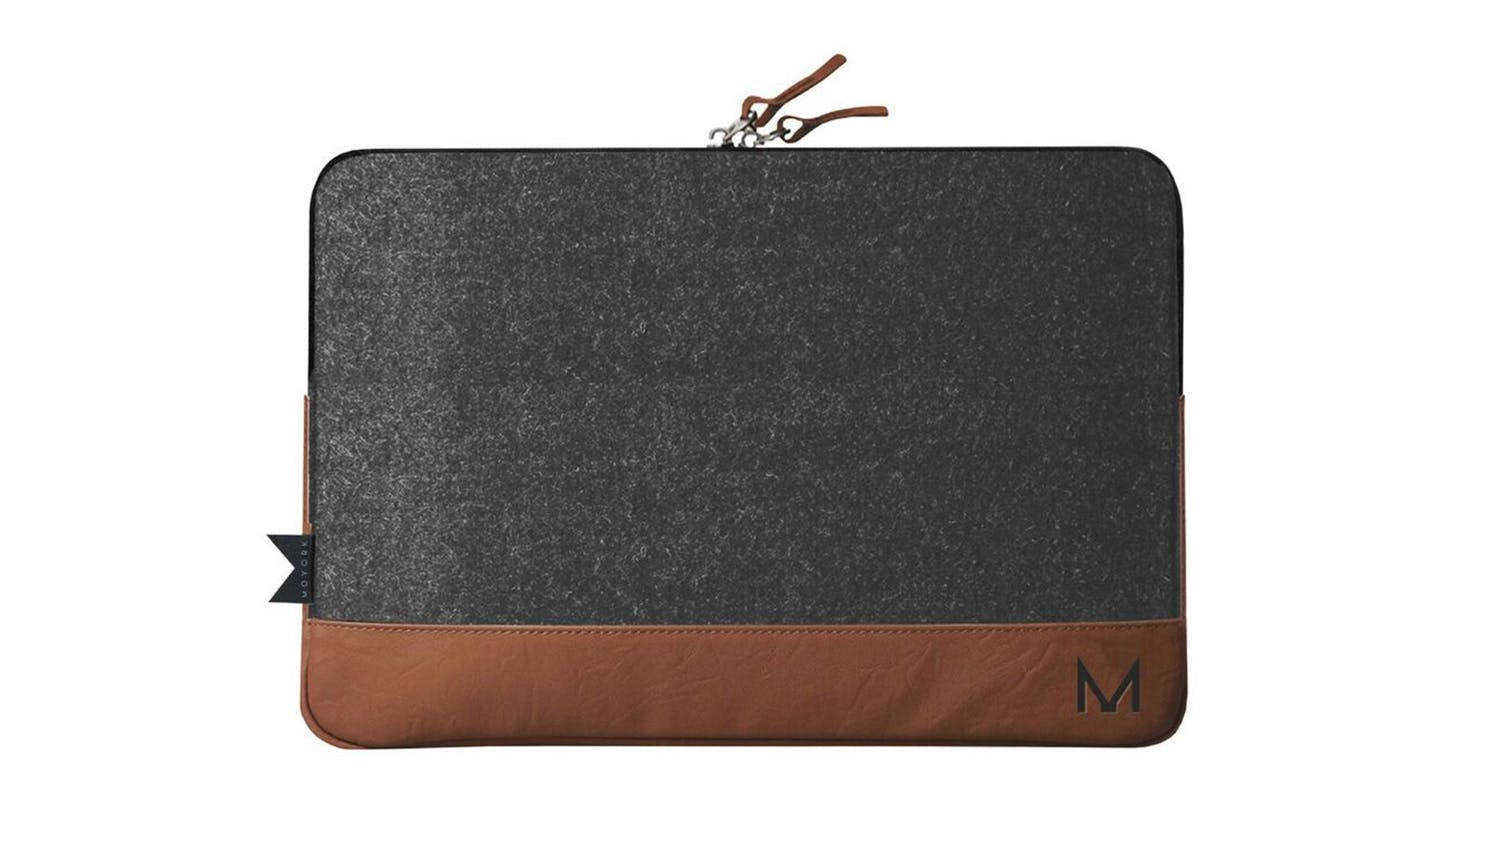 "Moyork Cloak 13-14"" Charging Sleeve - Marle/Nutmeg Leather"